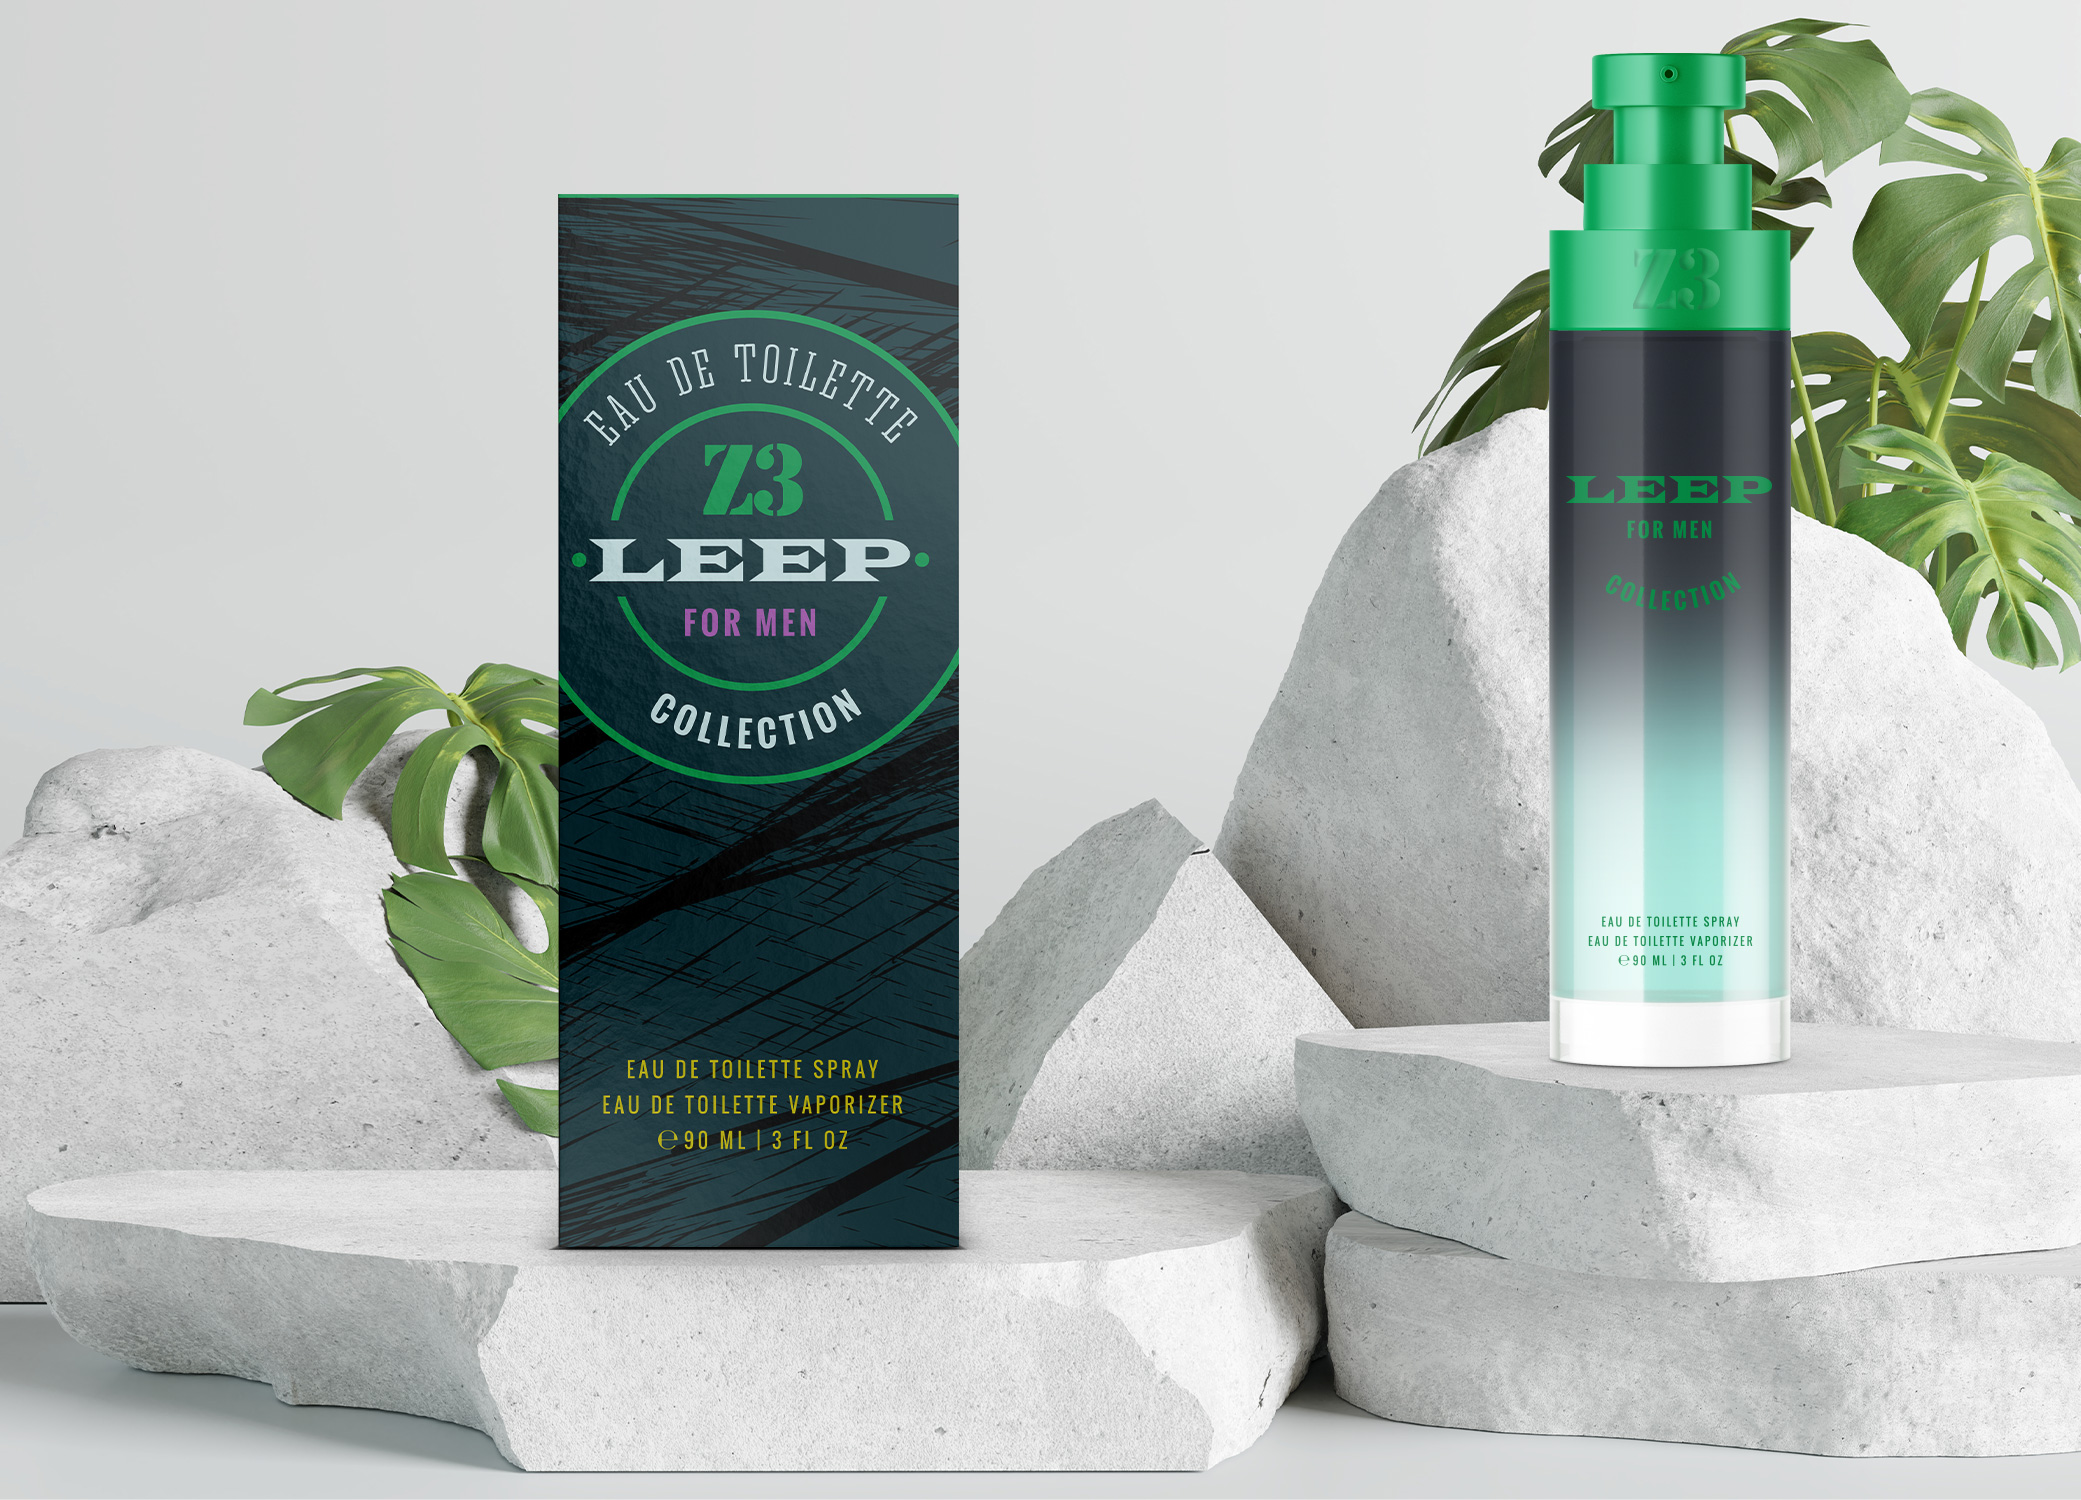 YZY Perfume men's fragrance bottle and package design in jungle green with tiger scratch pattern for Z3 Leep product.